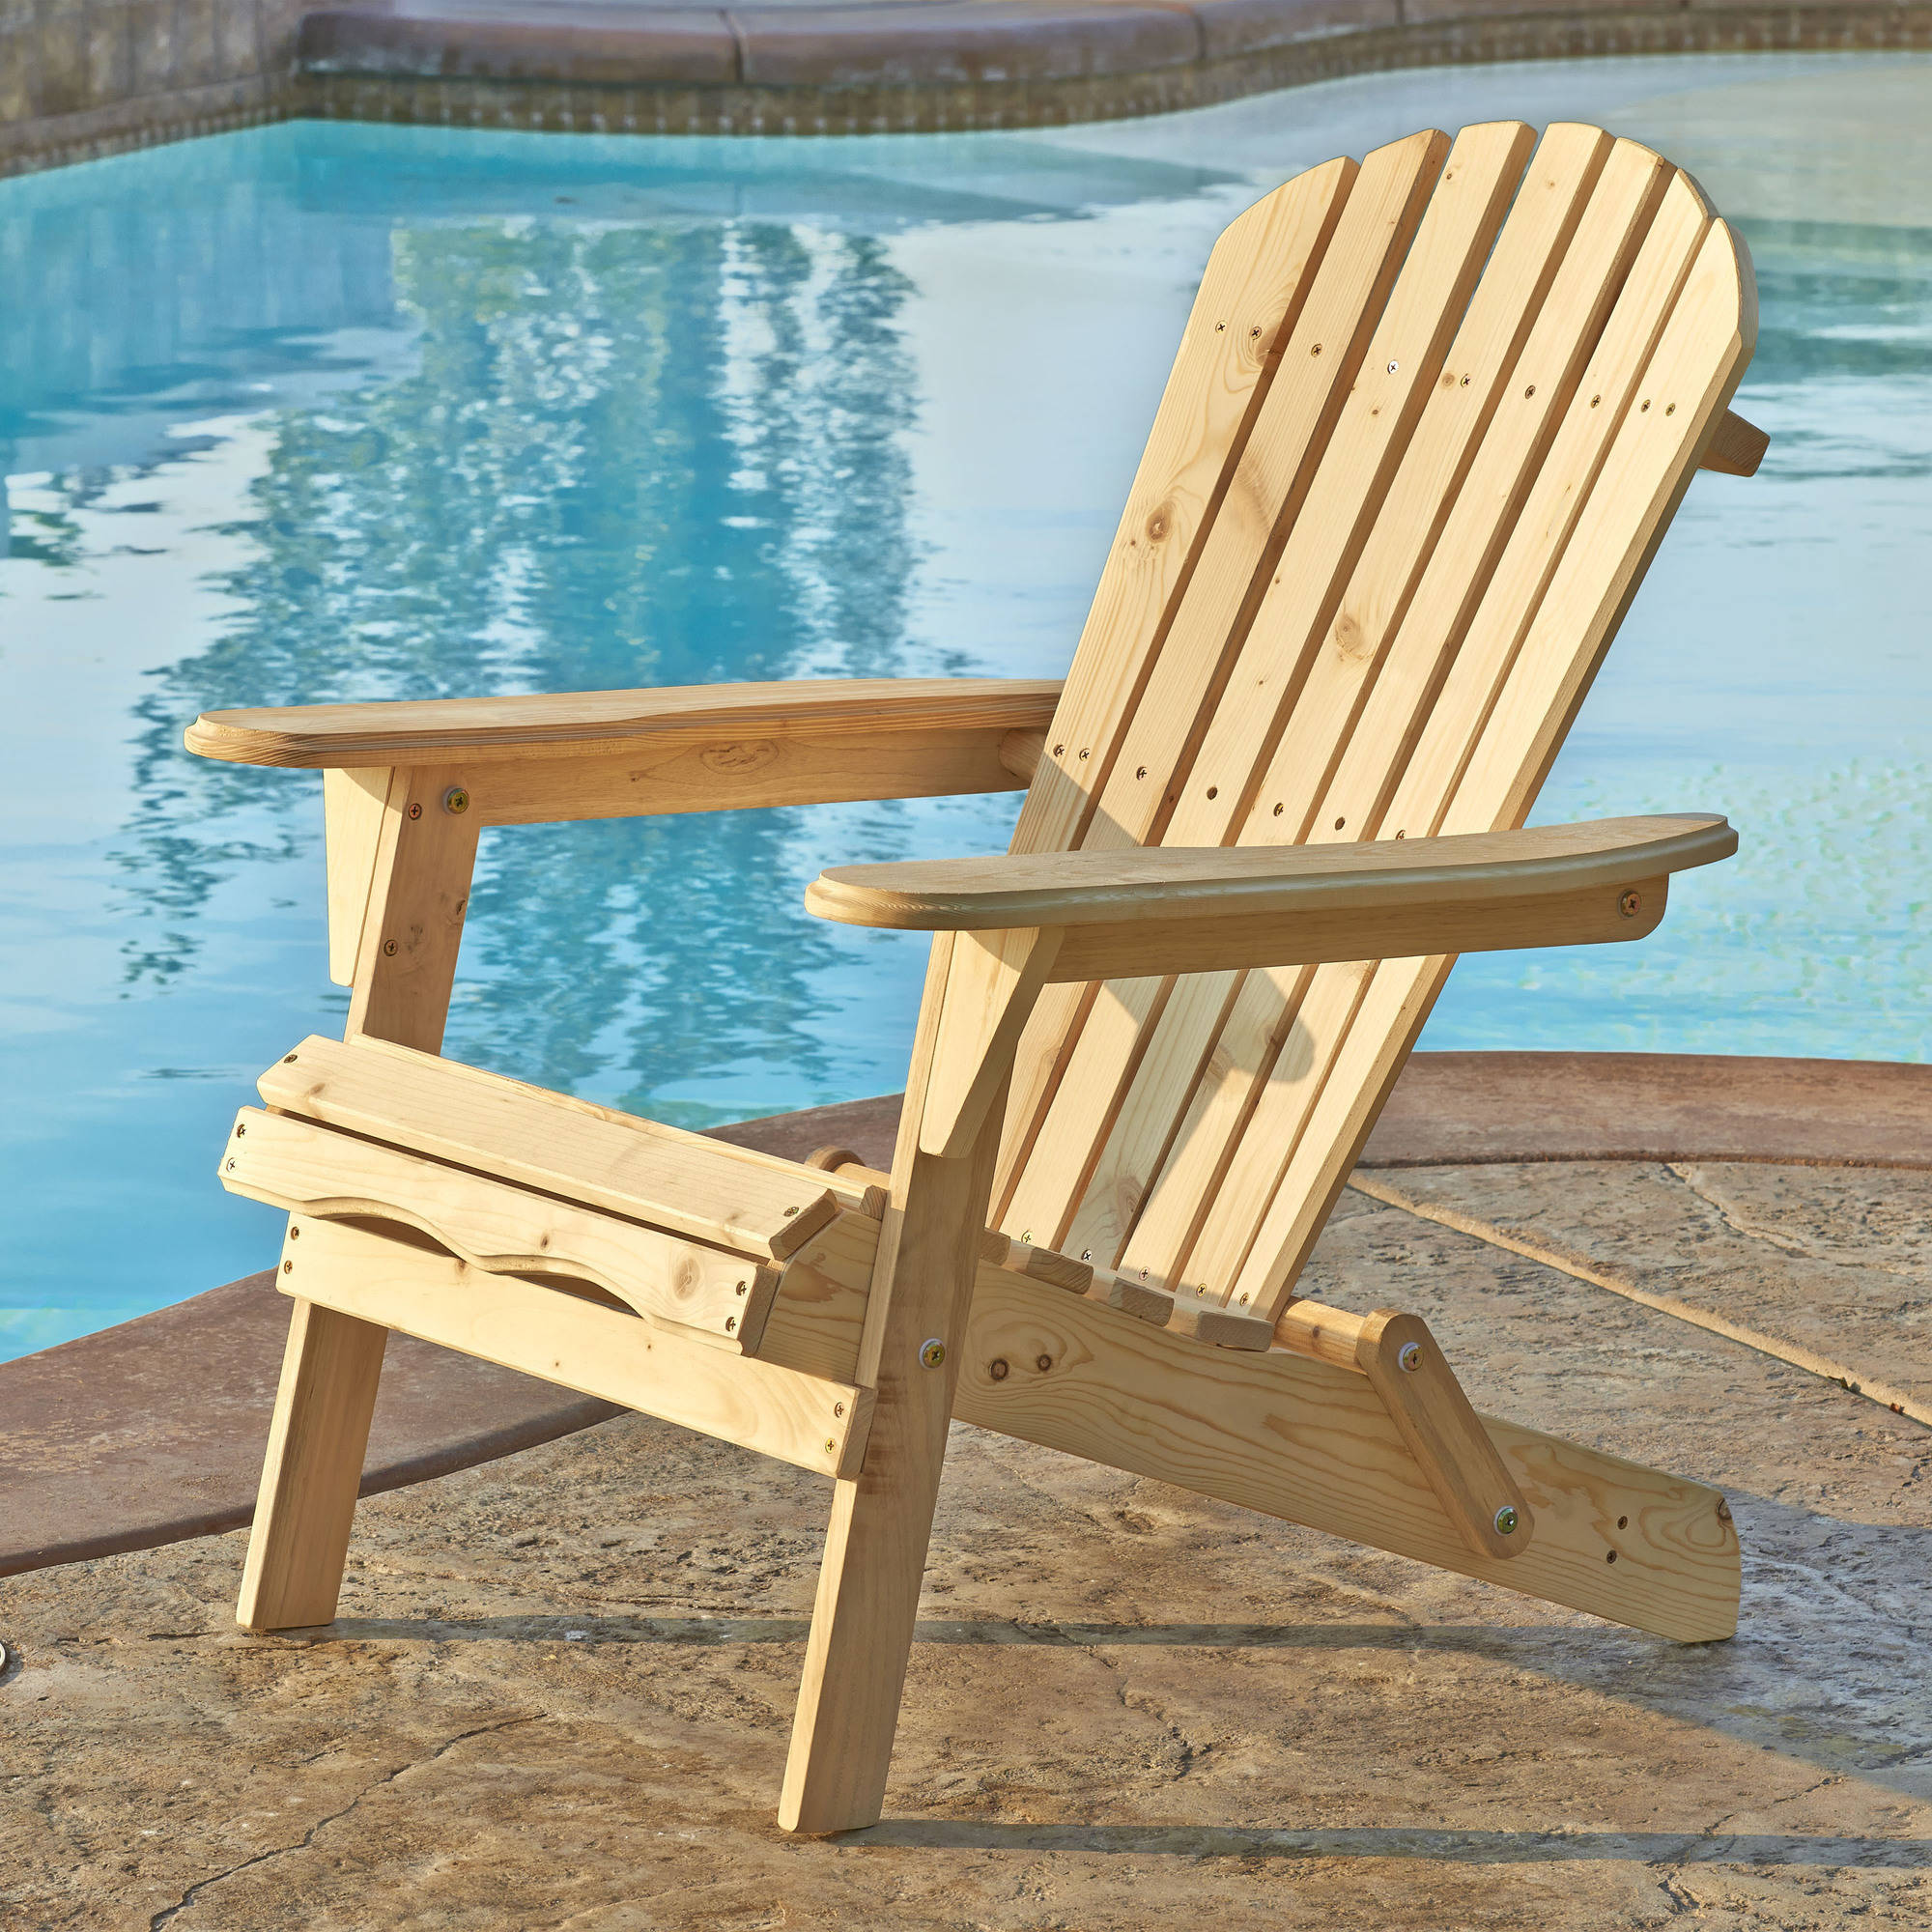 Incadozo Adirondack Chair, Natural Wood Color by Bestsign International